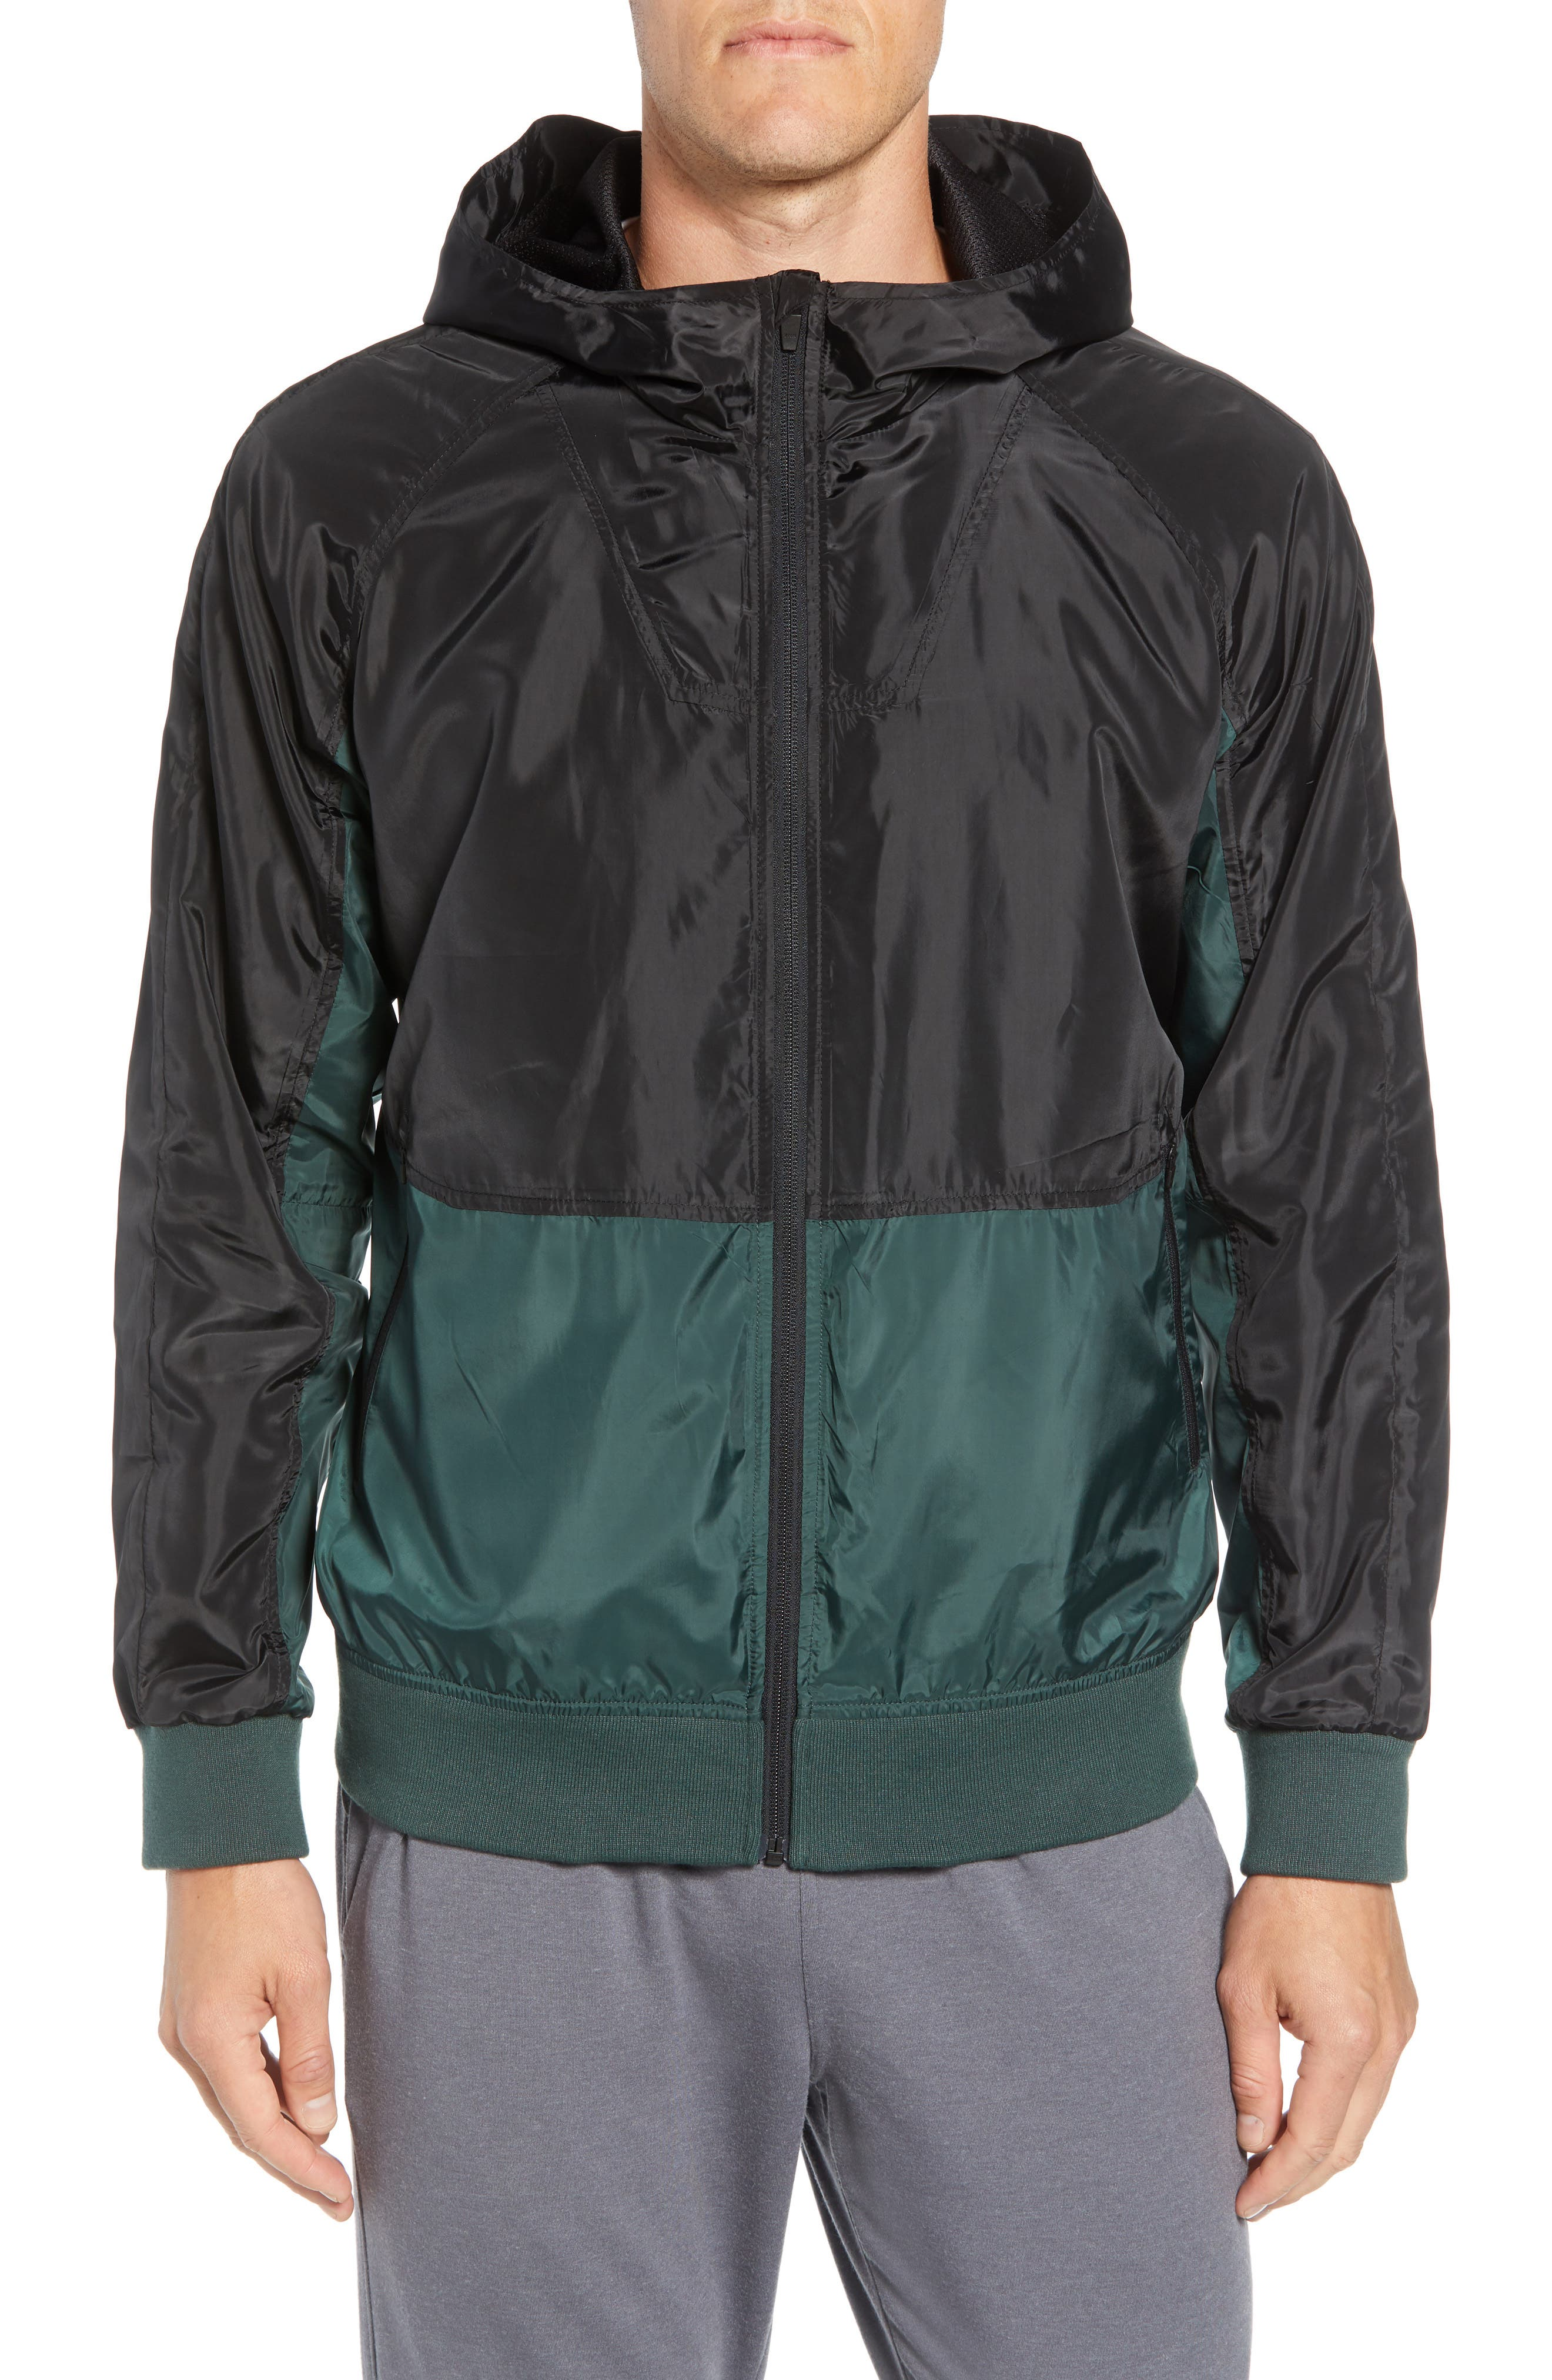 Colorblock Hooded Windbreaker Jacket,                             Alternate thumbnail 4, color,                             BLACK GREEN ODINITE